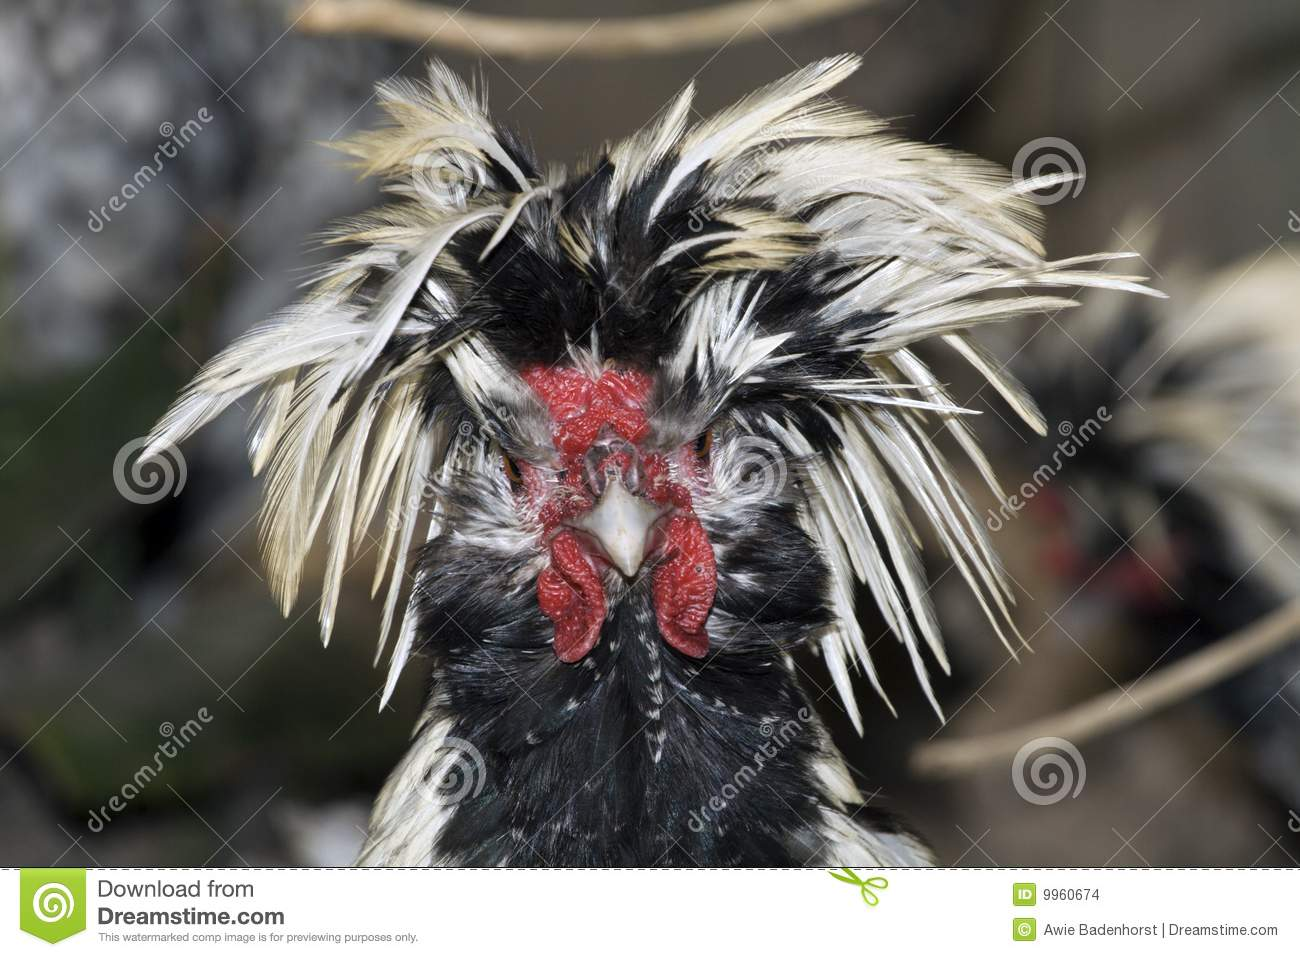 Chicken With Ruffled Feathers Stock Images - Image: 9960674 Ruffled Feathers